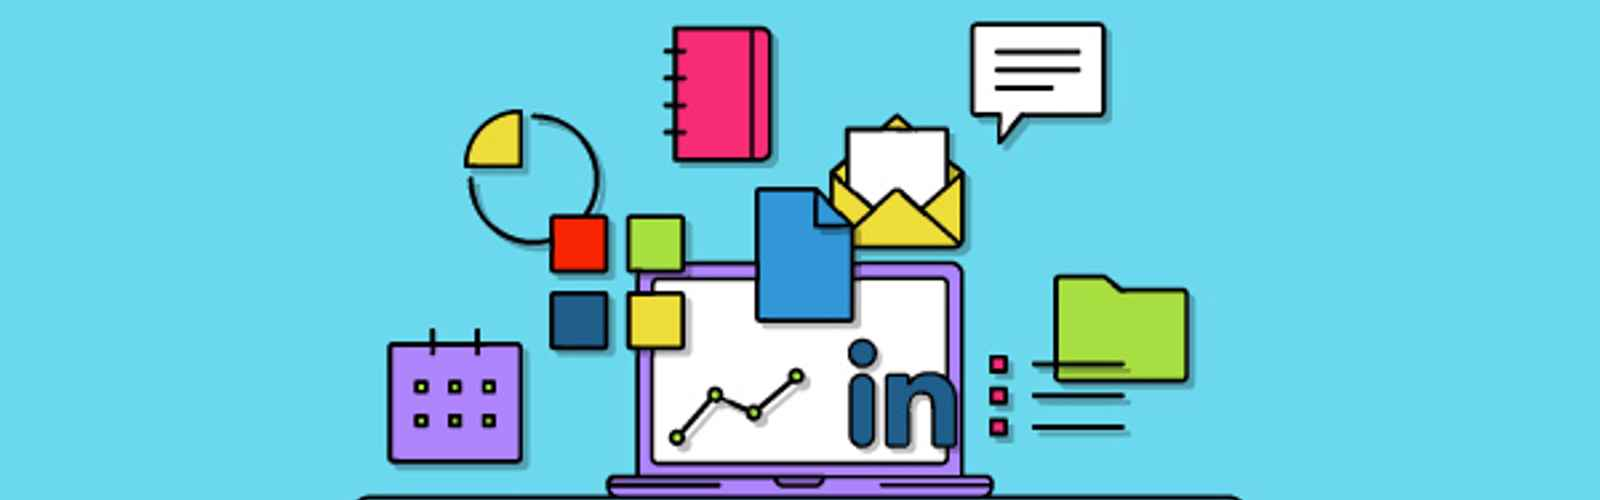 Microsoft's LinkedIn Acquisition Good For SMBs